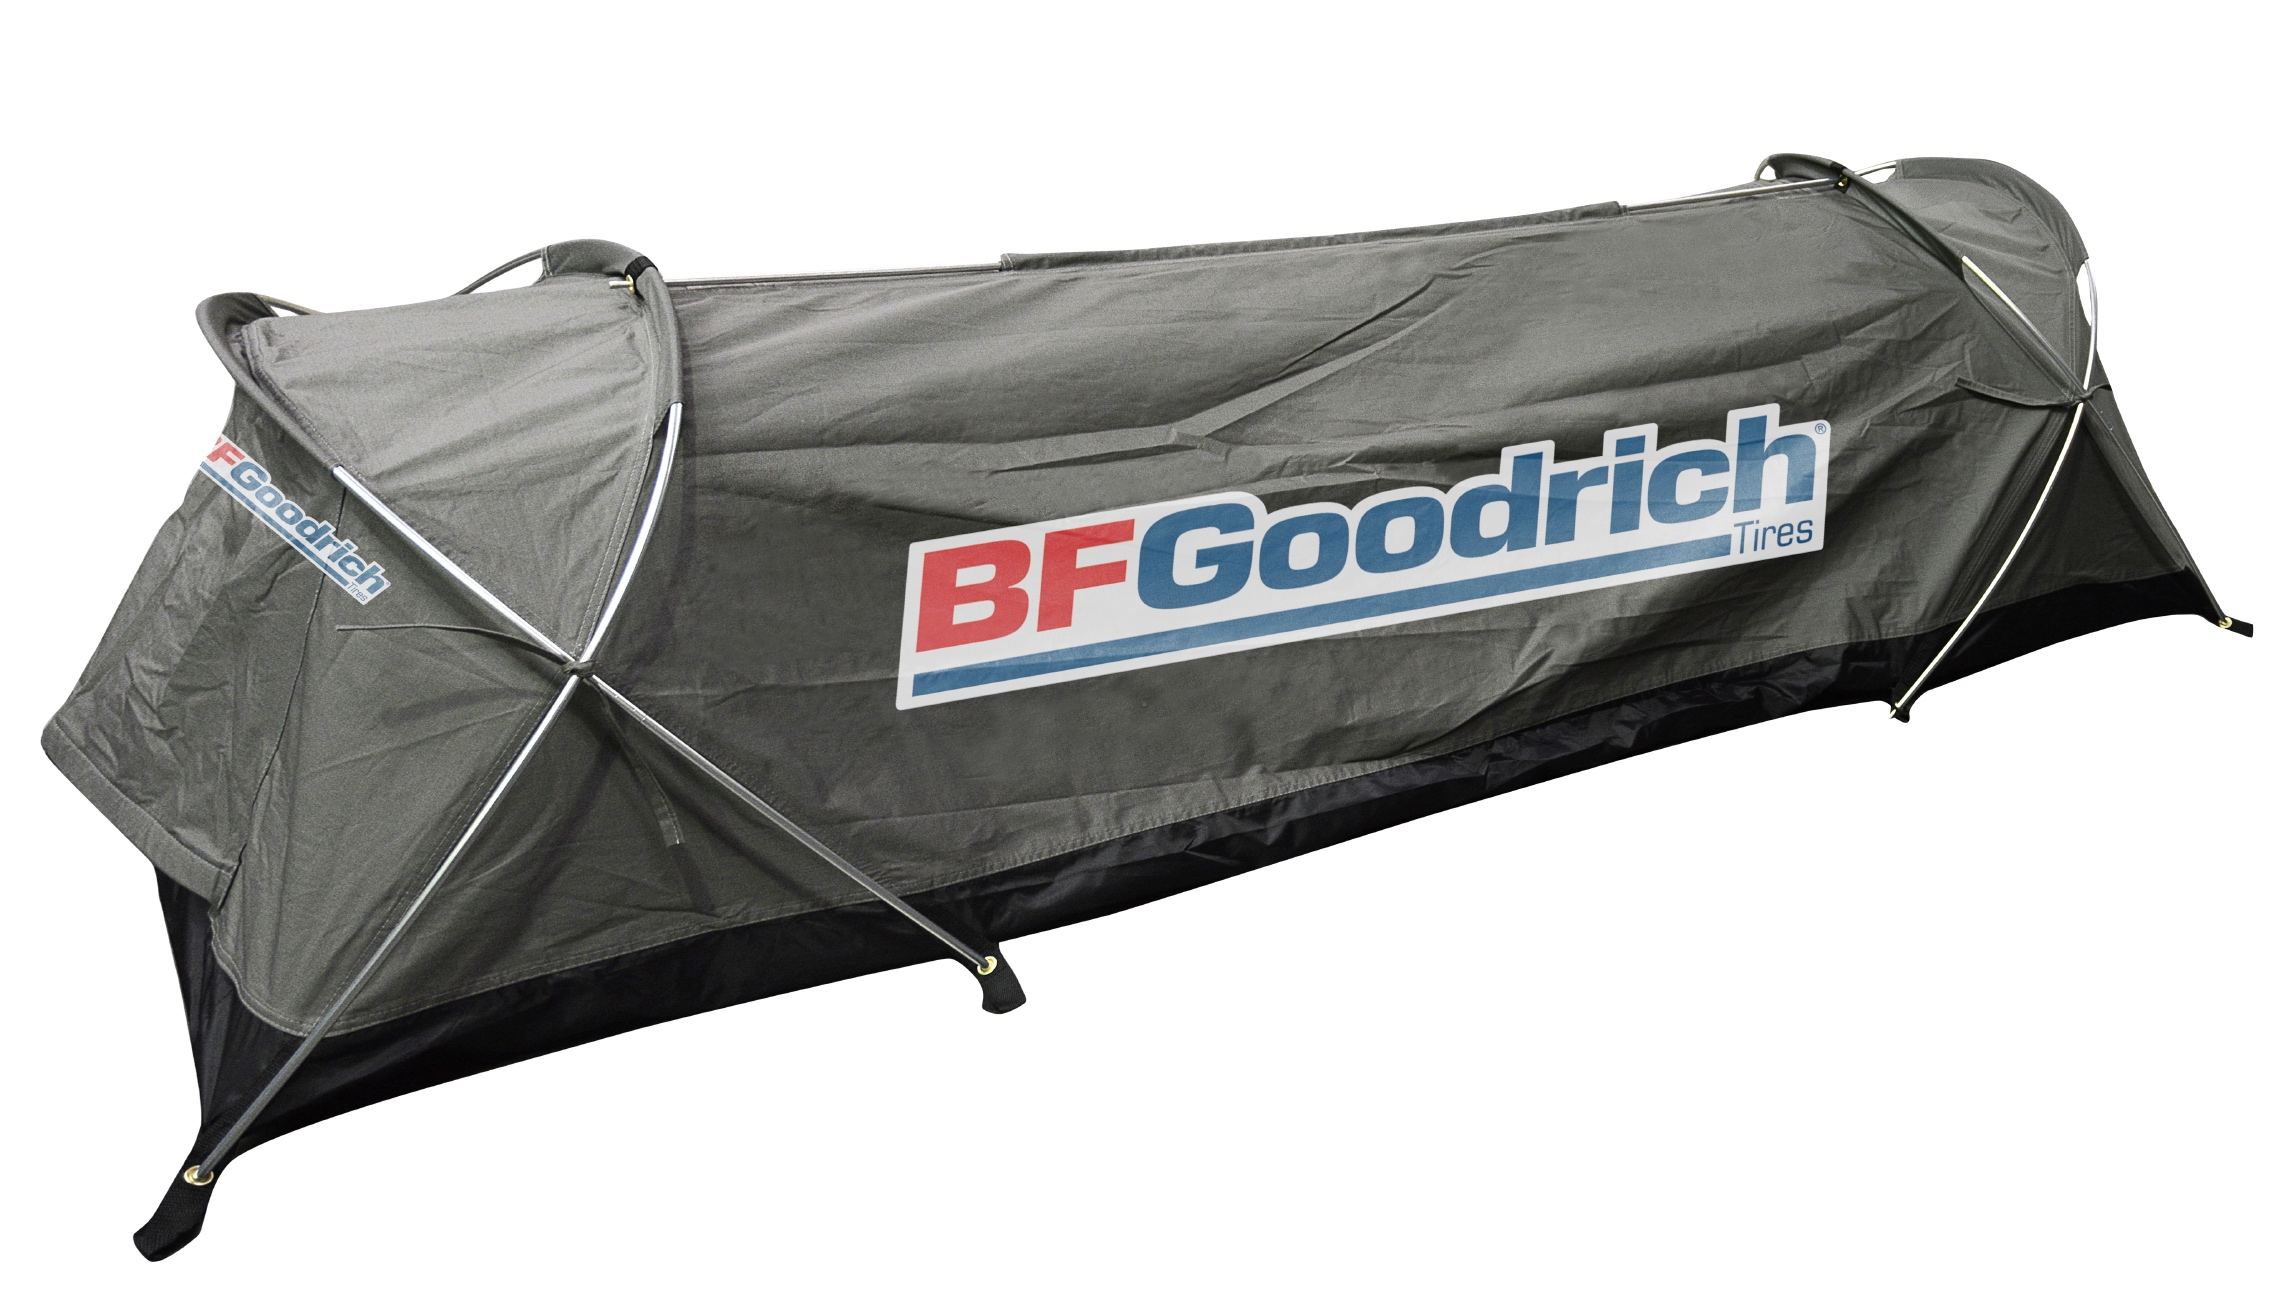 BFGoodrich has you covered for your next camping adventure